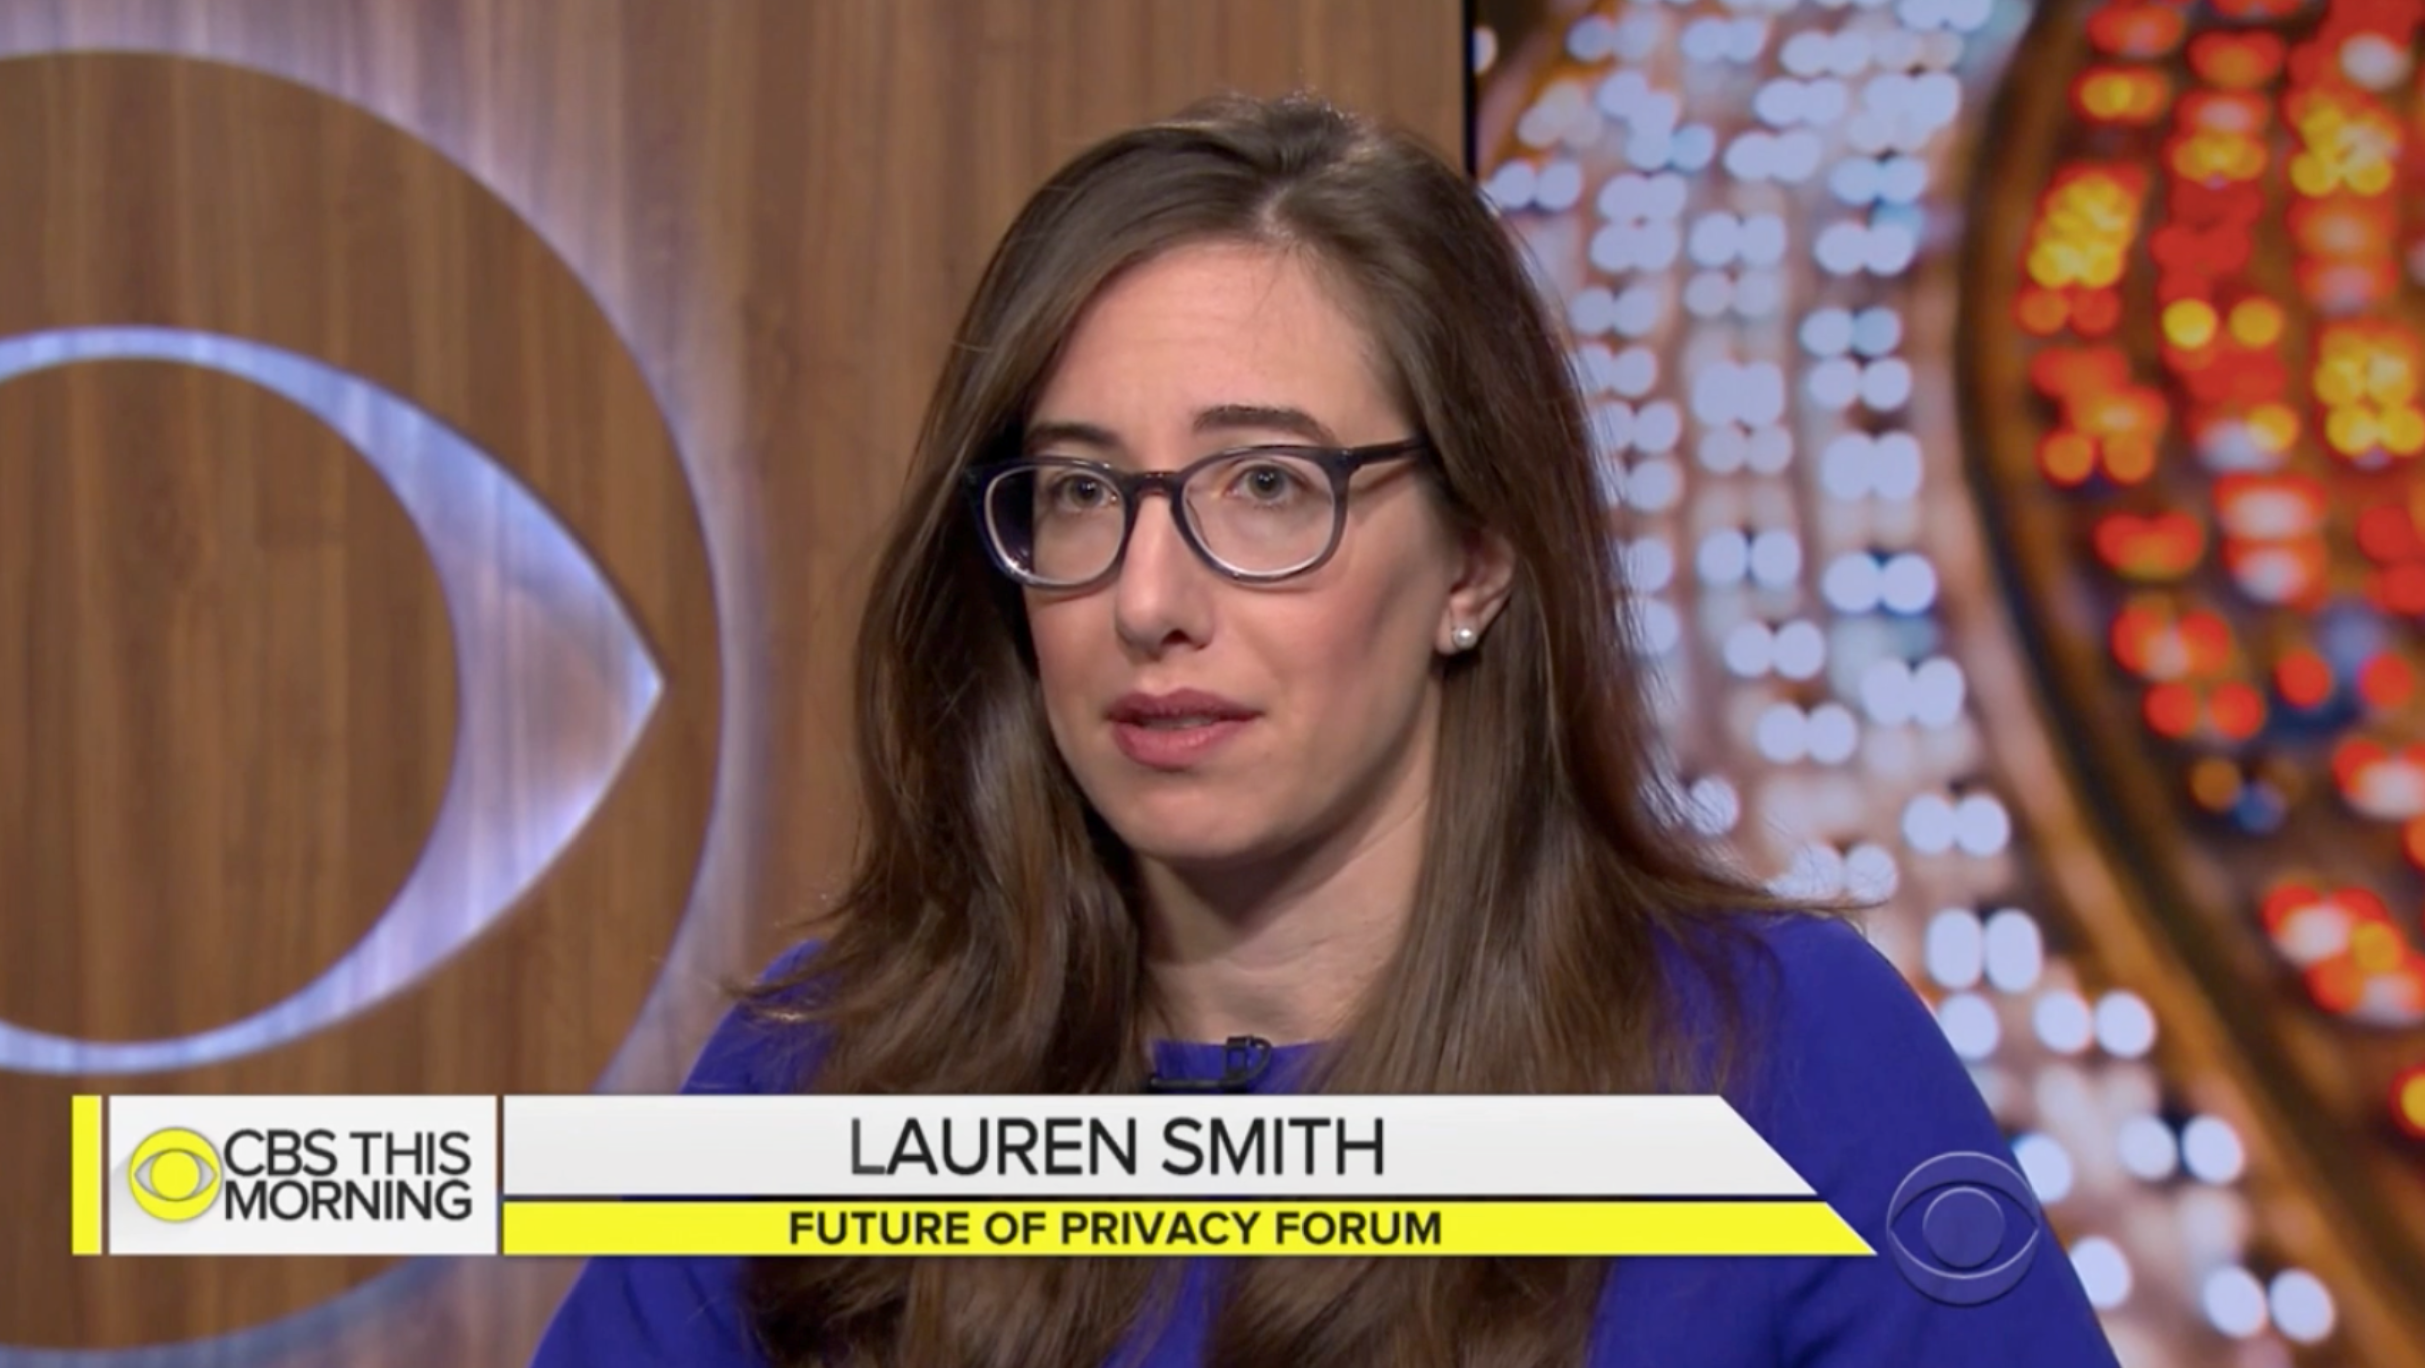 Lauren Smith Cbs This Morning